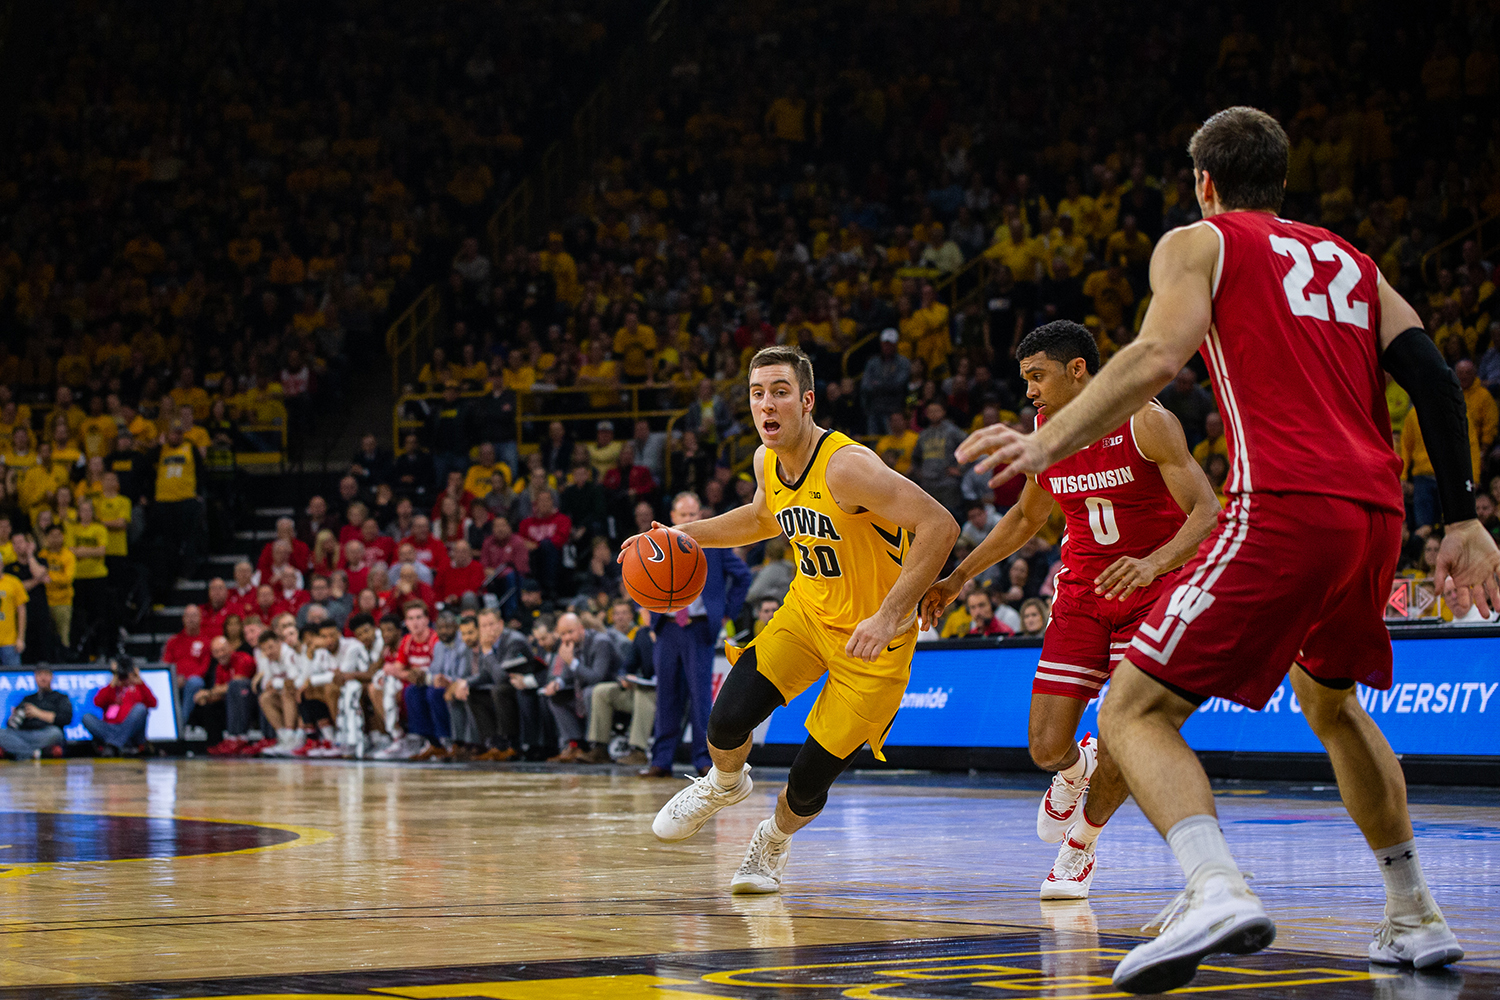 Iowa guard Connor McCaffery drives towards the basket during Iowa's game against Wisconsin at Carver-Hawkeye Arena on November 30, 2018. The Hawkeyes were defeated by the Badgers 72-66.